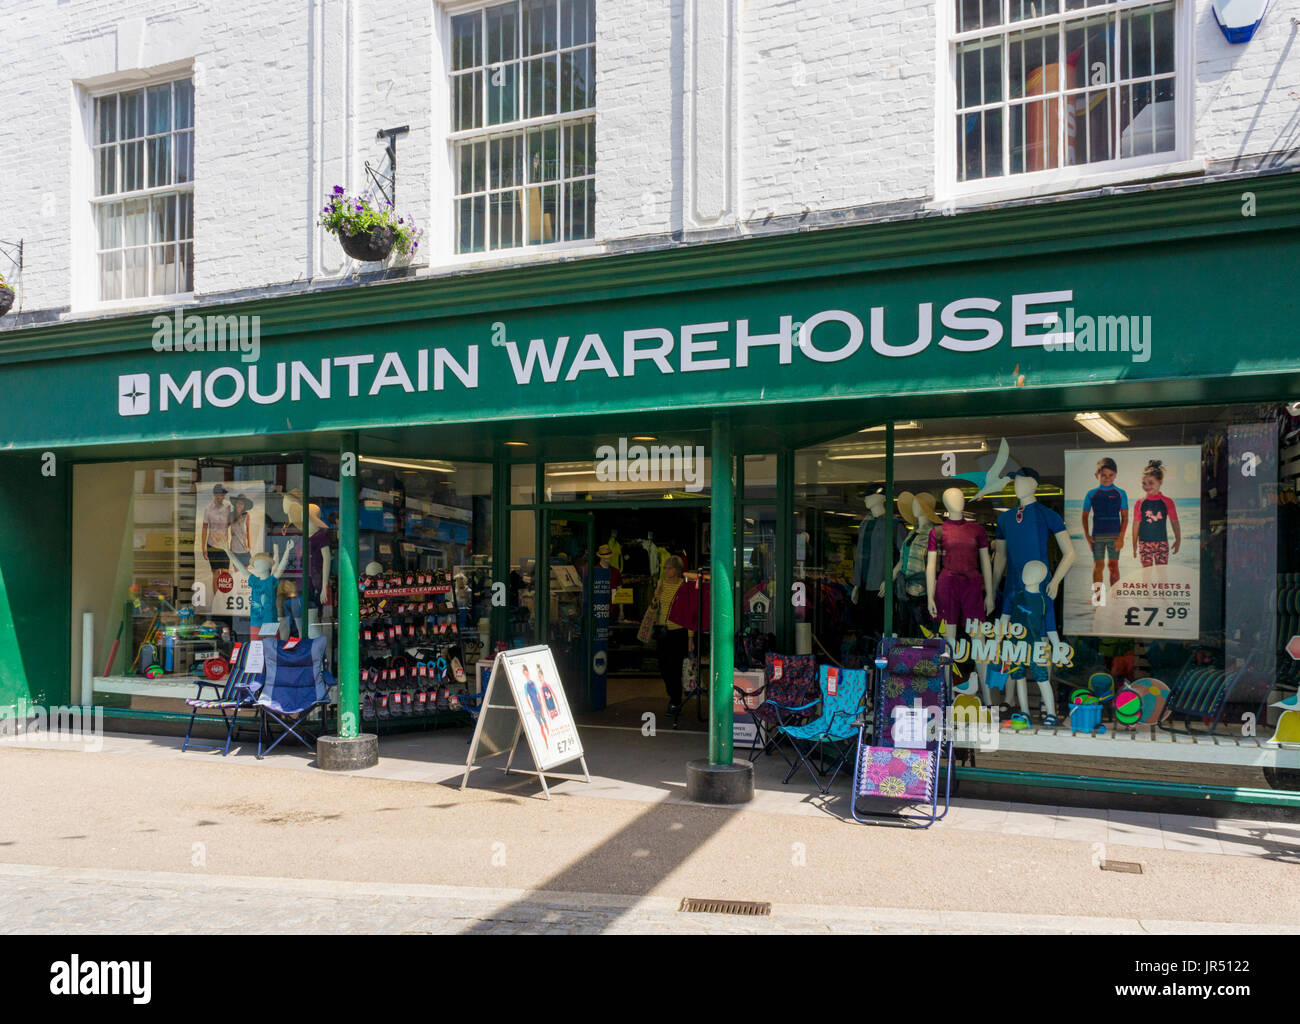 Mountain Warehouse store, England, UK - Stock Image